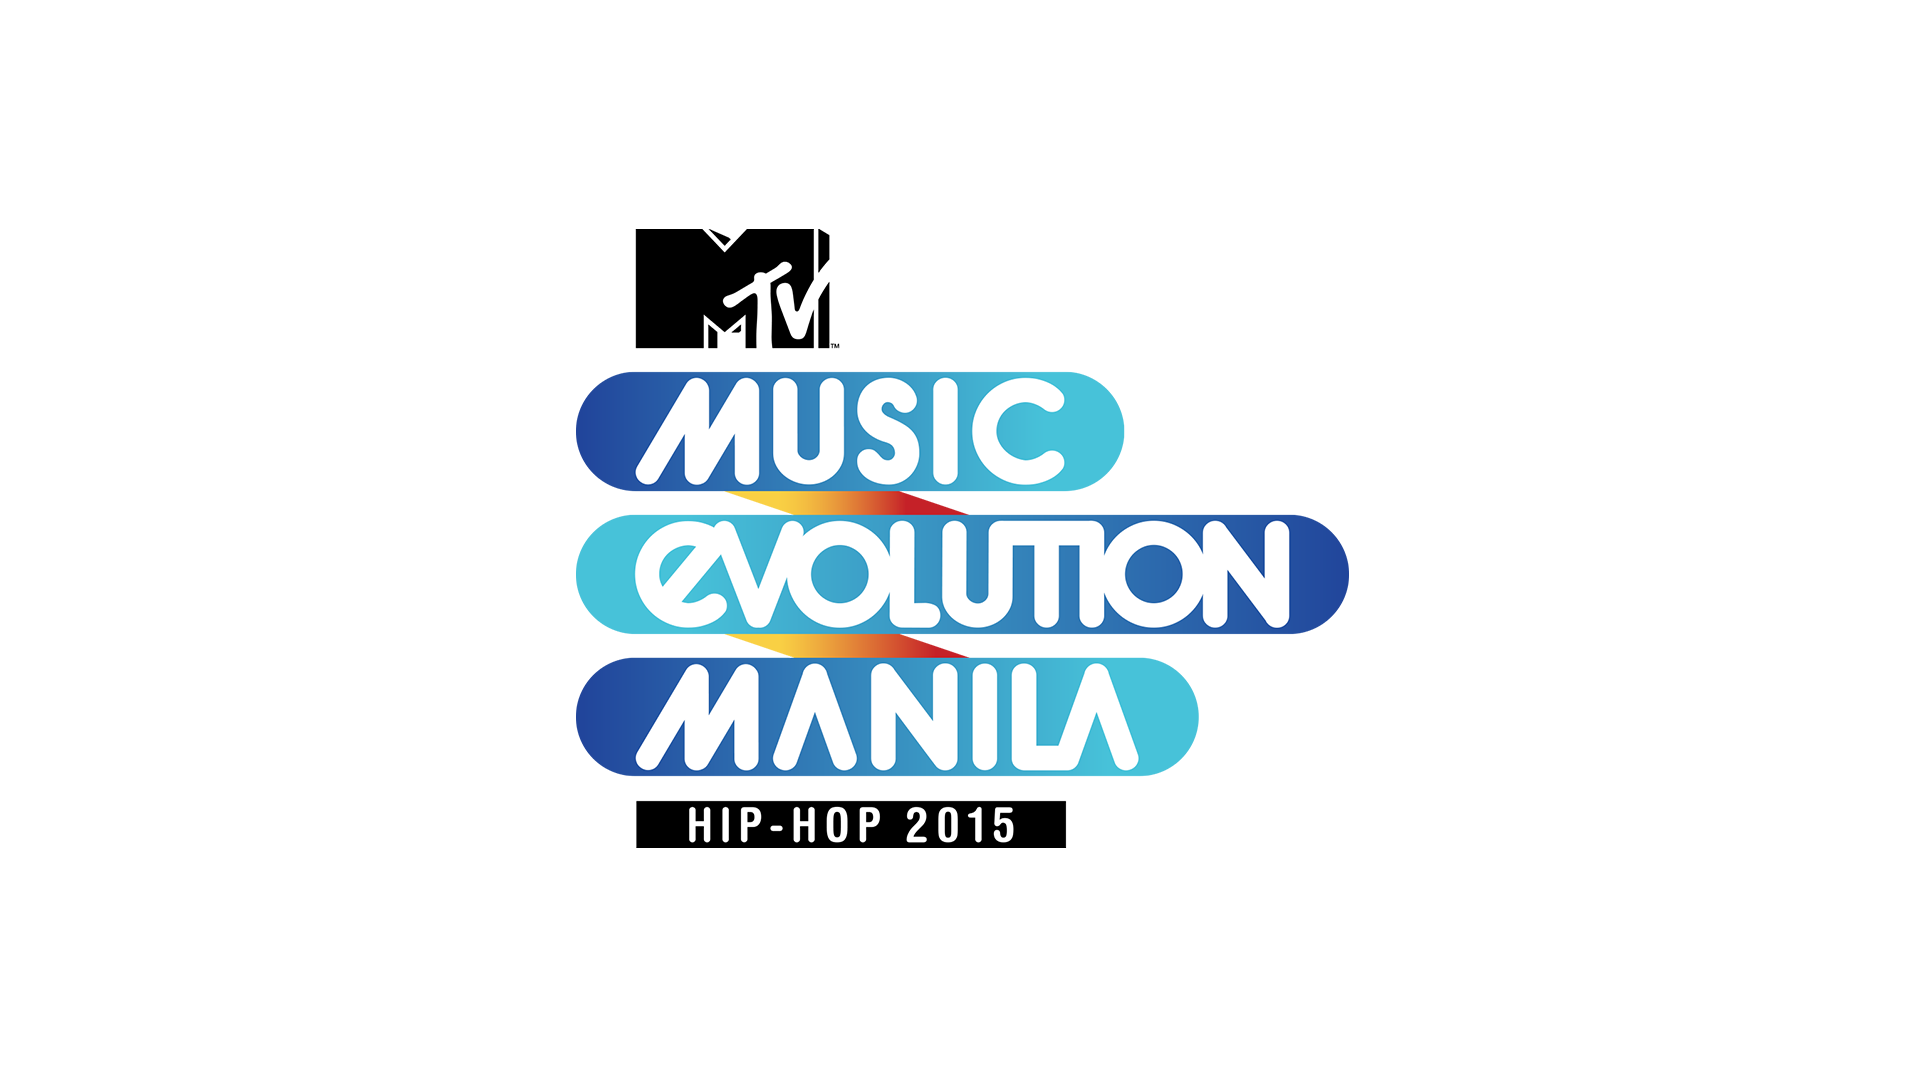 MTV Music Evo Manila